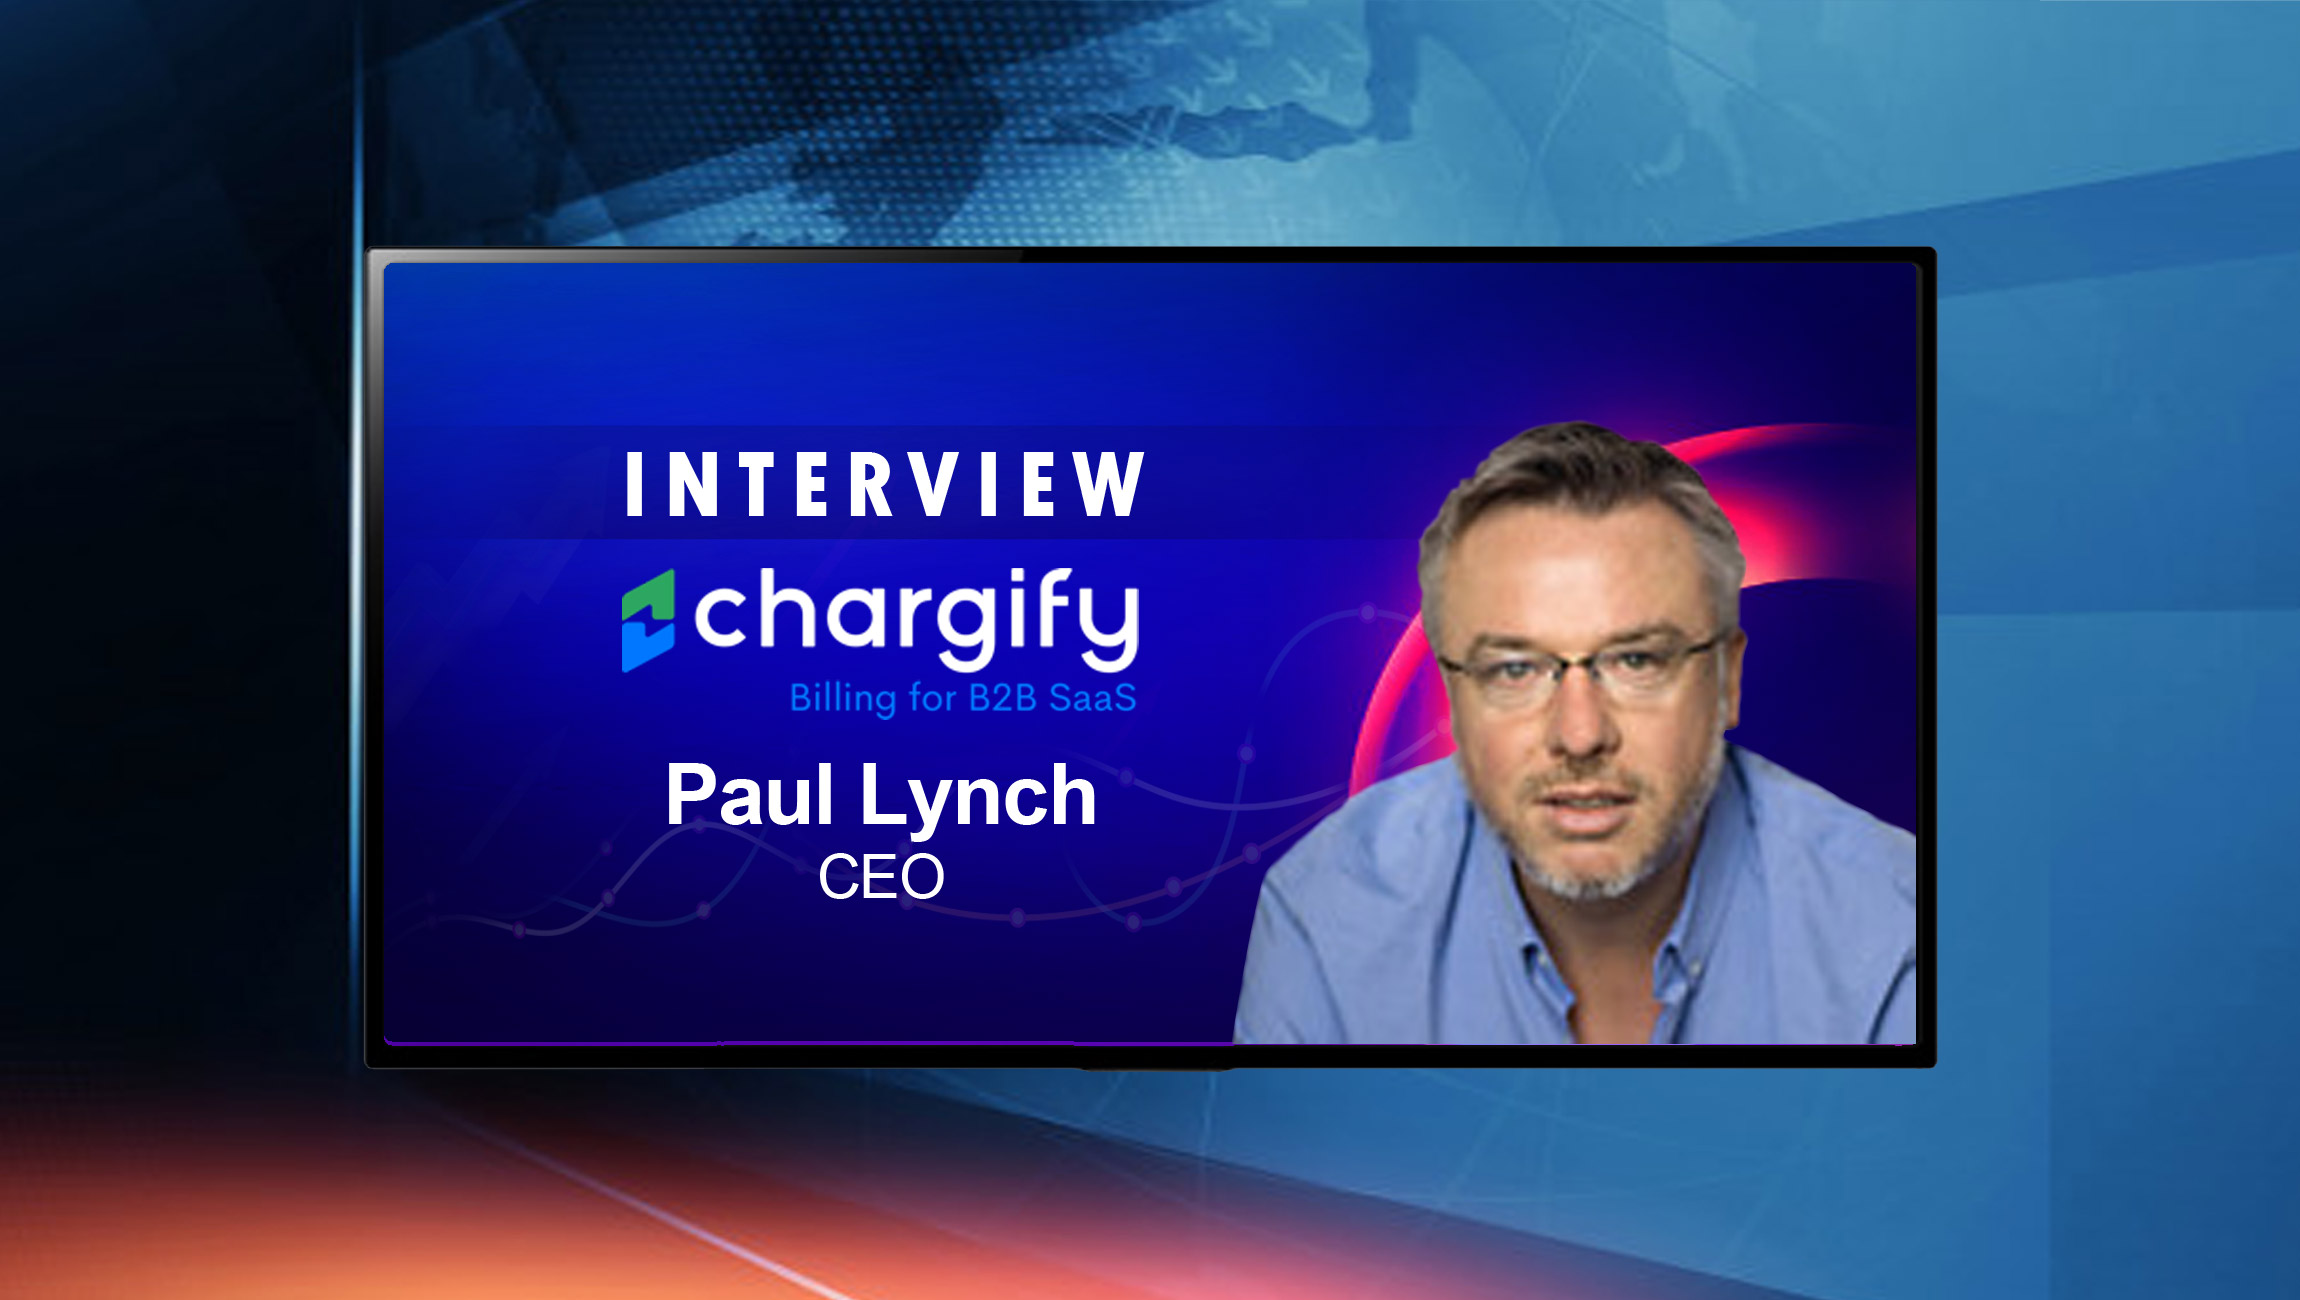 SalesTechStar Interview with Paul Lynch, CEO at Chargify